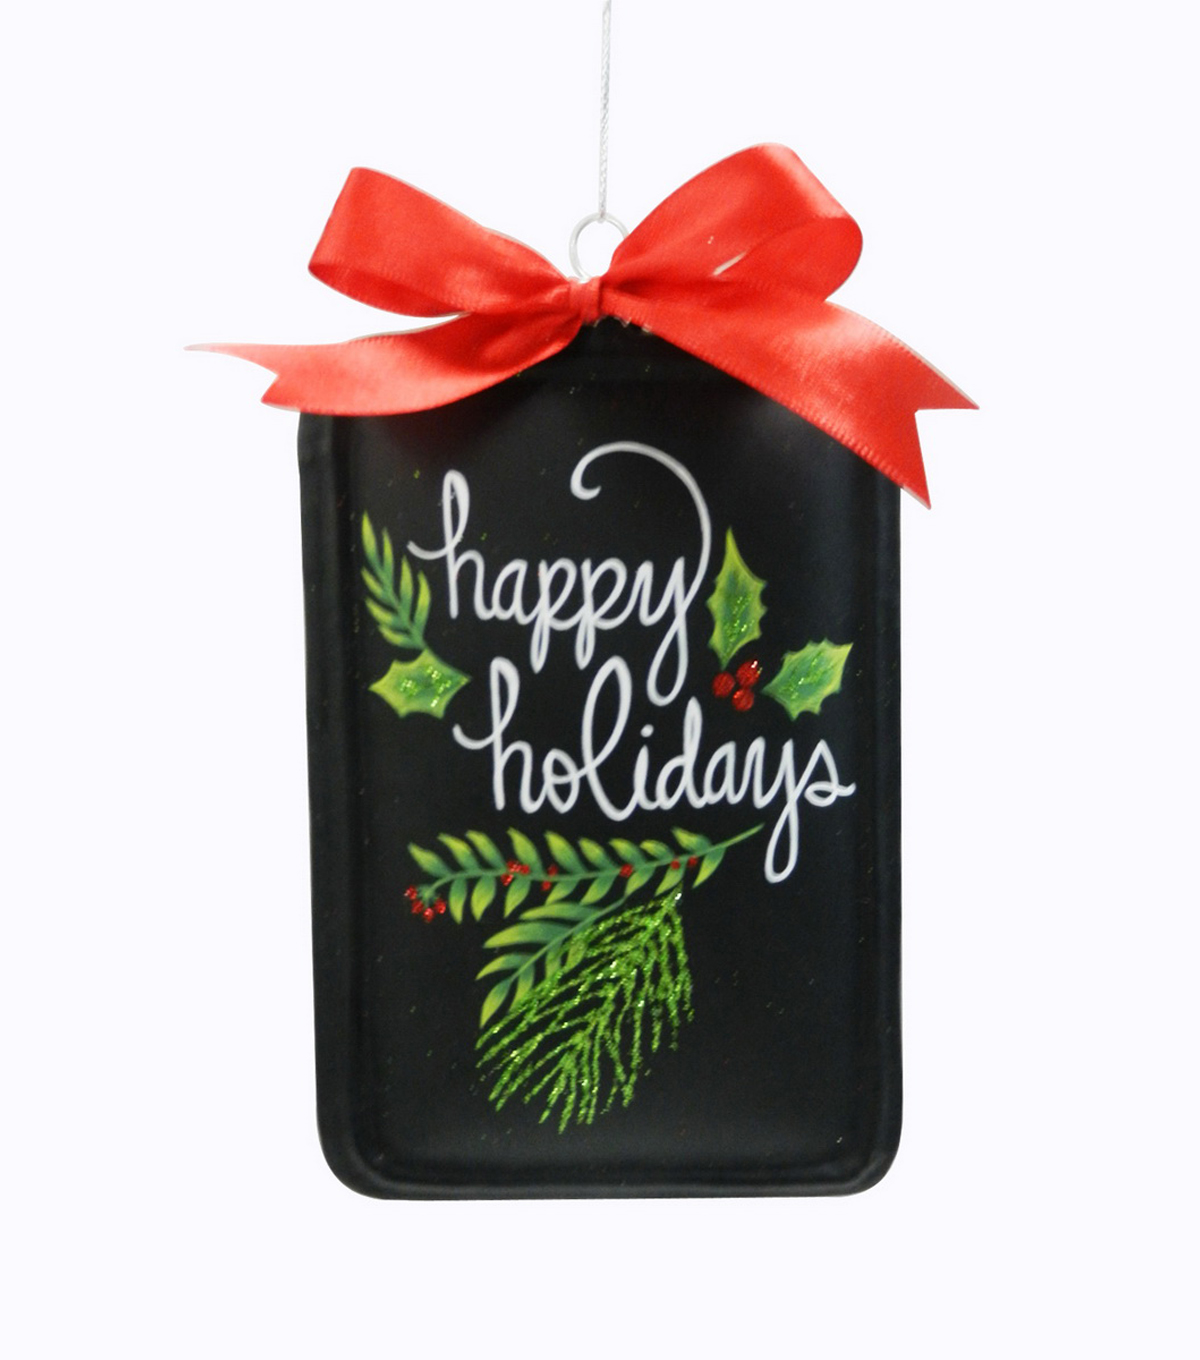 Maker\u0027s Holiday Happy Holidays Chalkboard Ornament